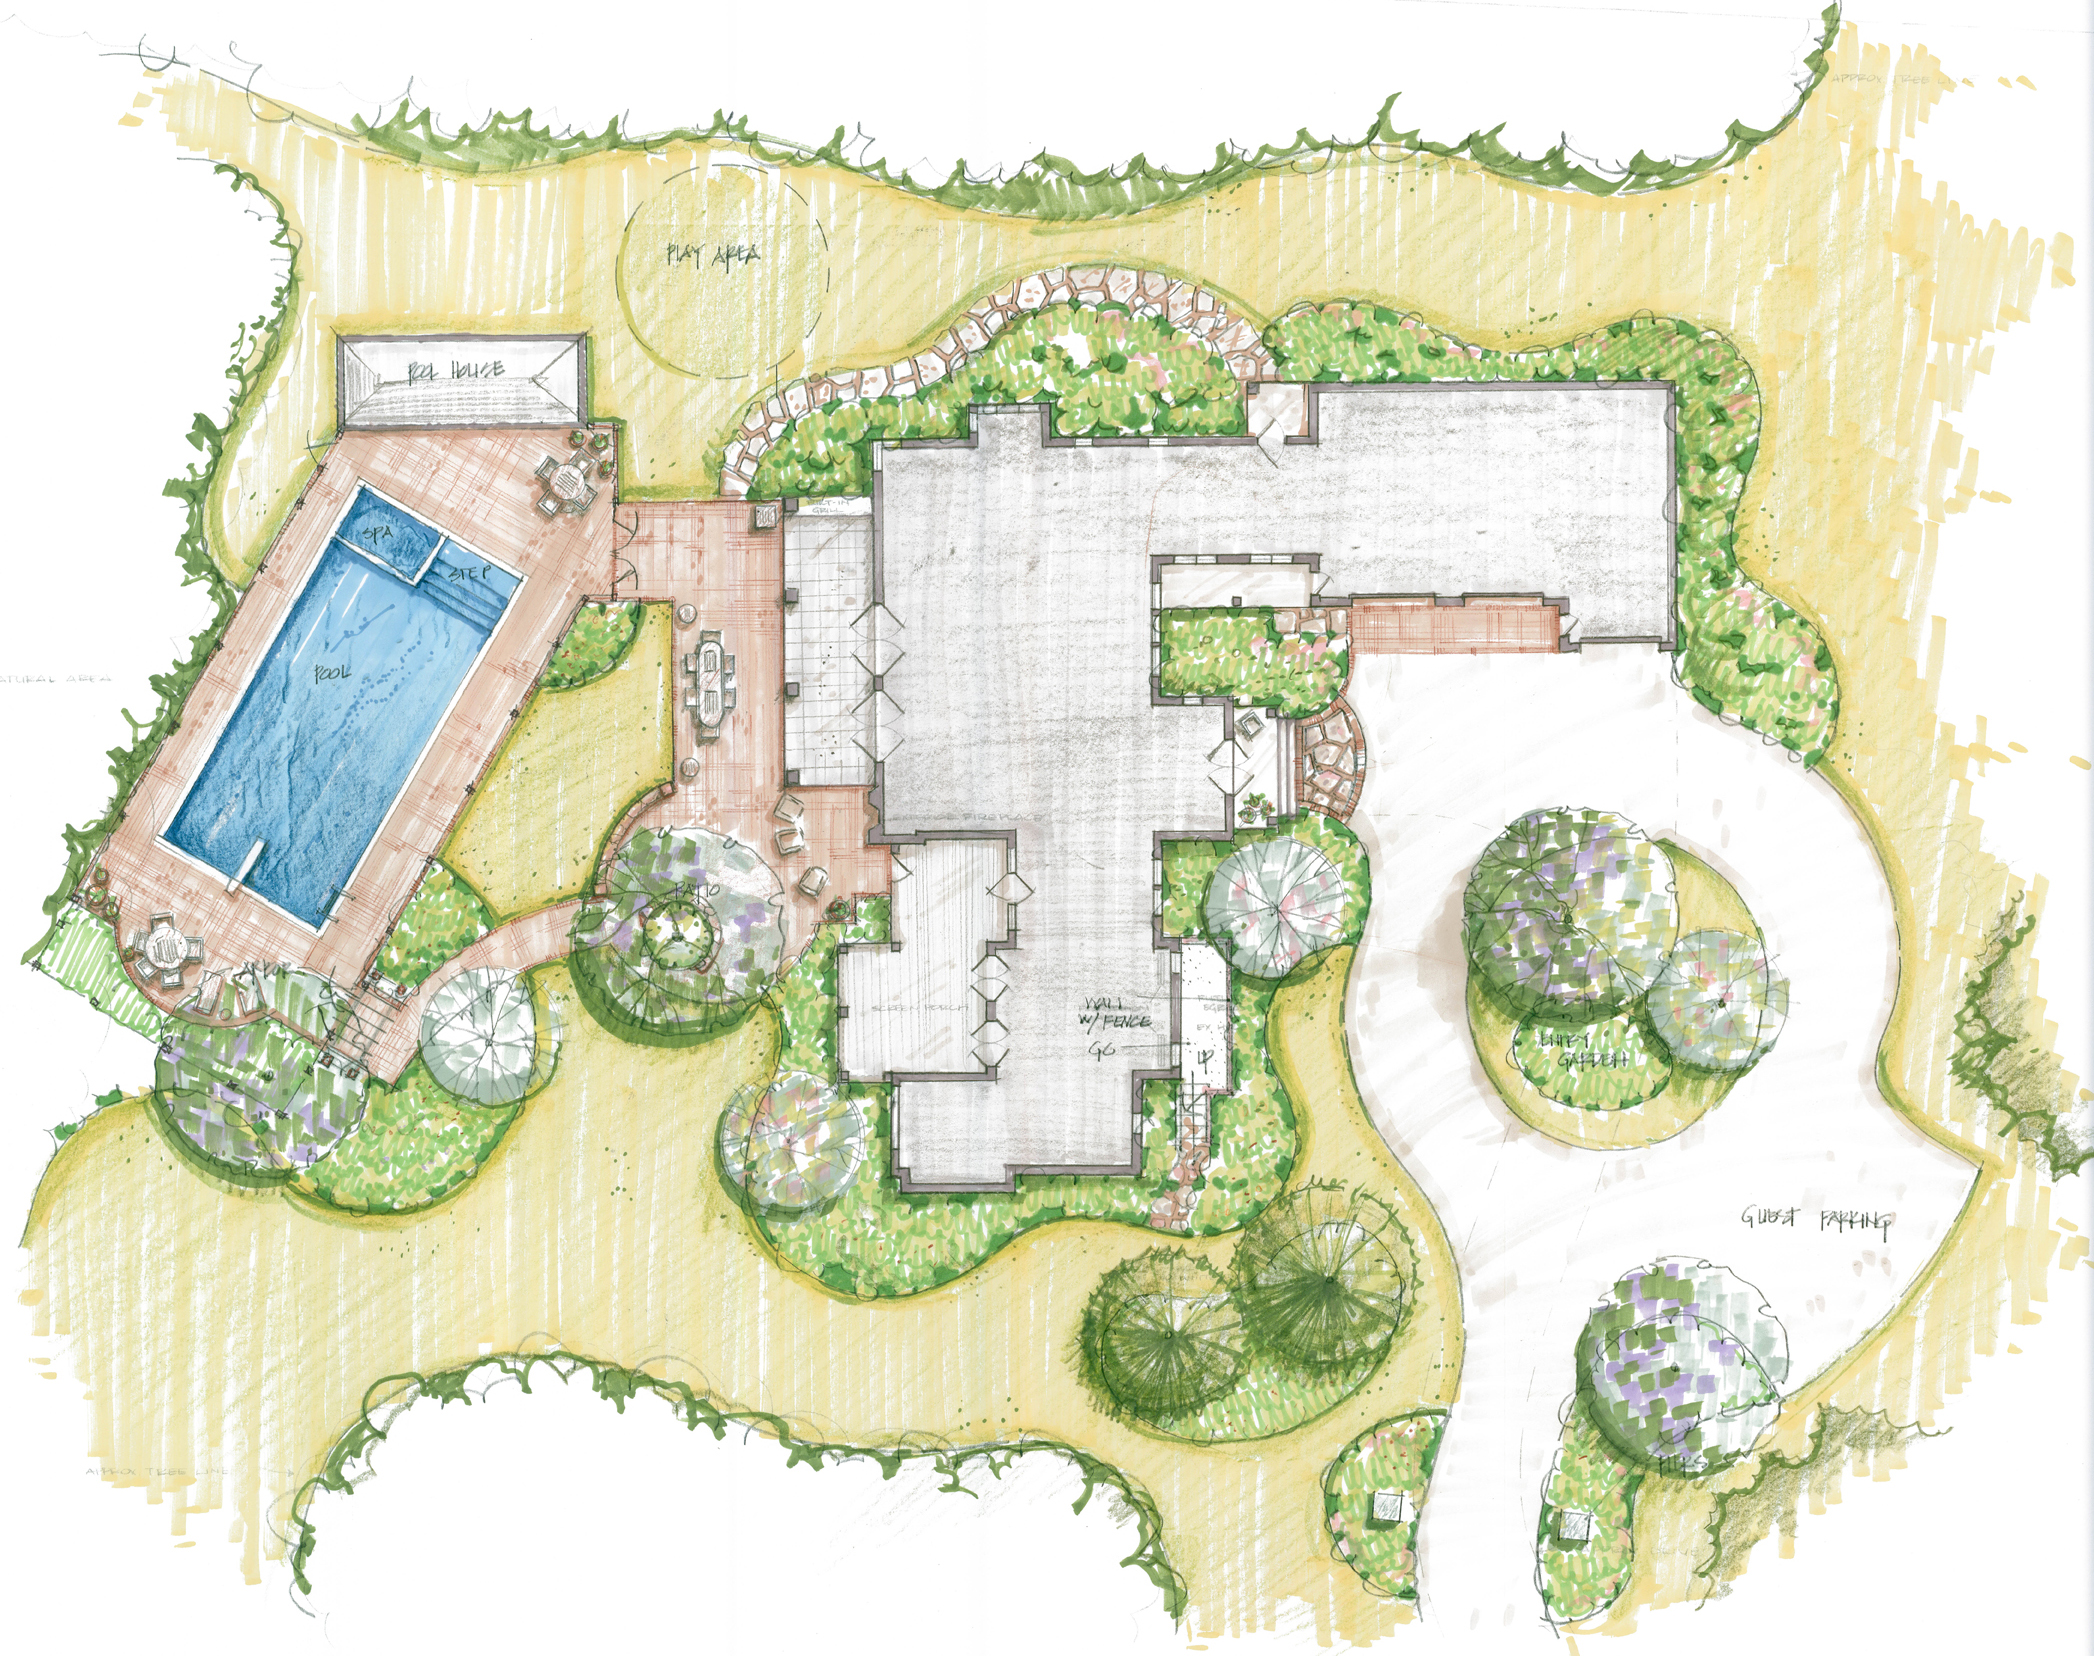 5 simple reasons to plan your landscape design landscape for Simple landscape design plans